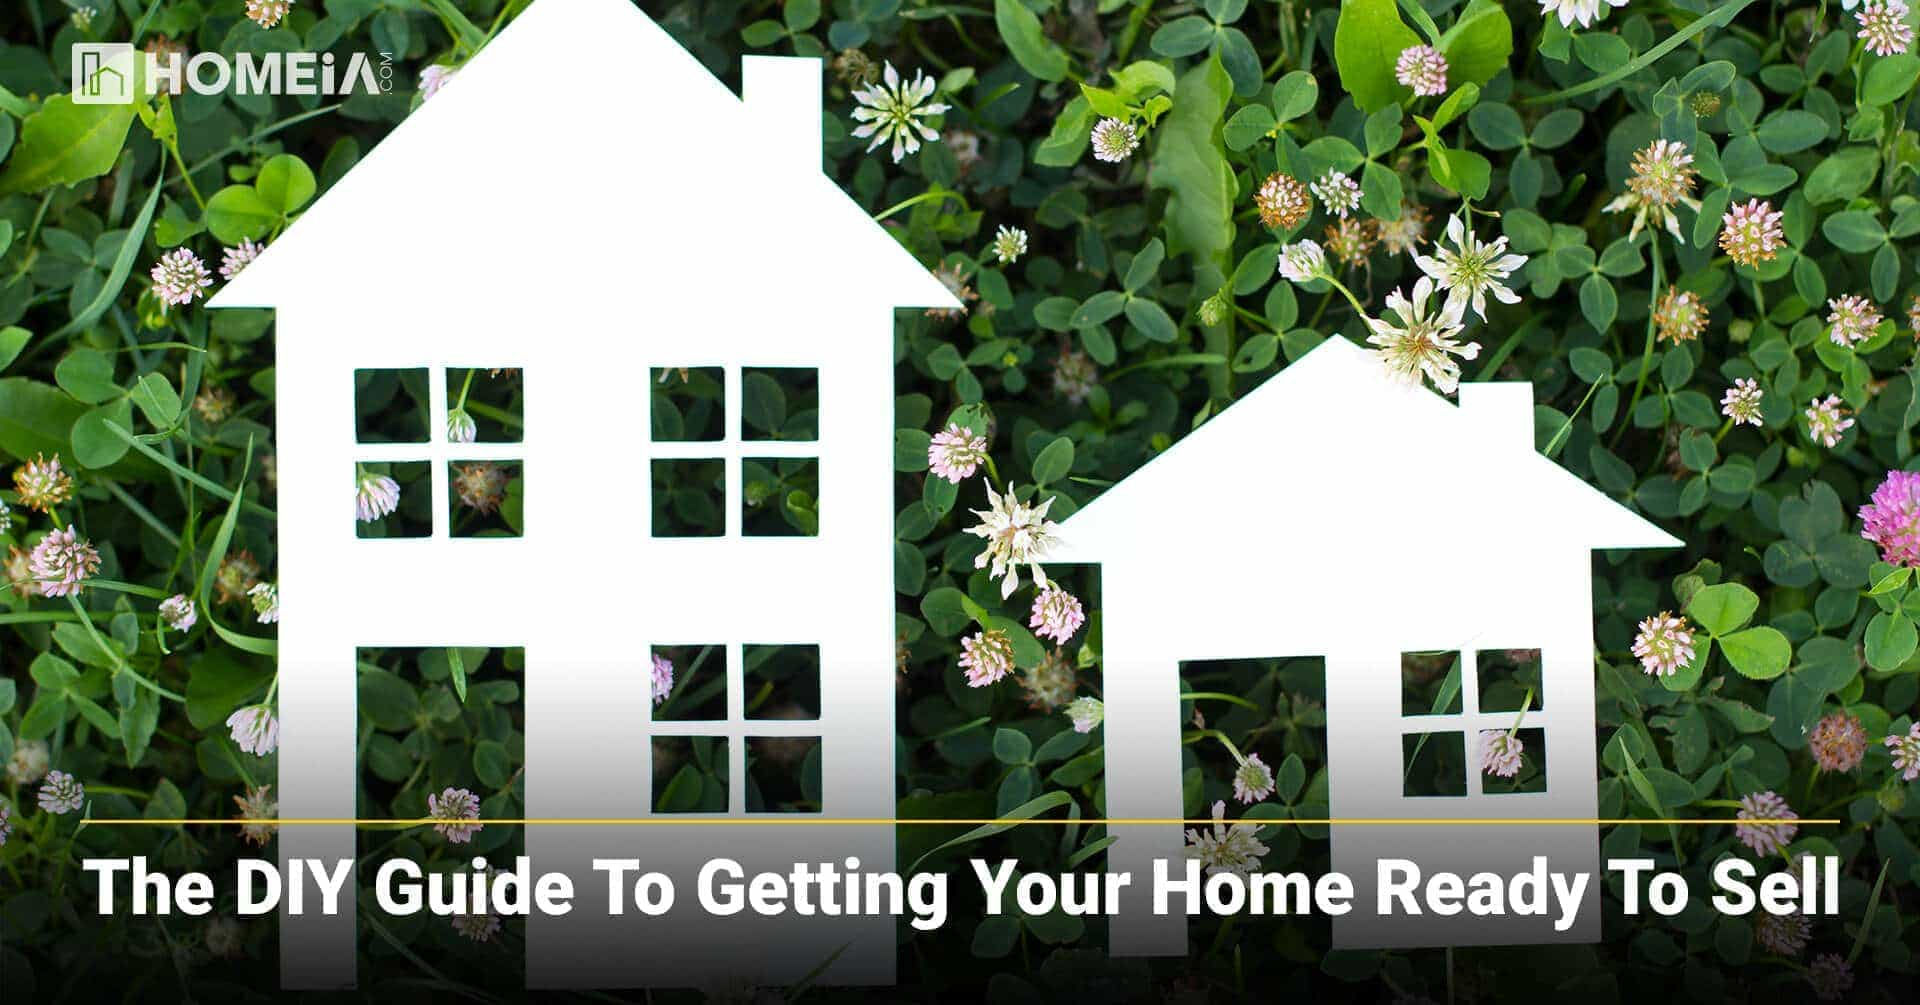 The DIY Guide to Getting Your Home Ready to Sell